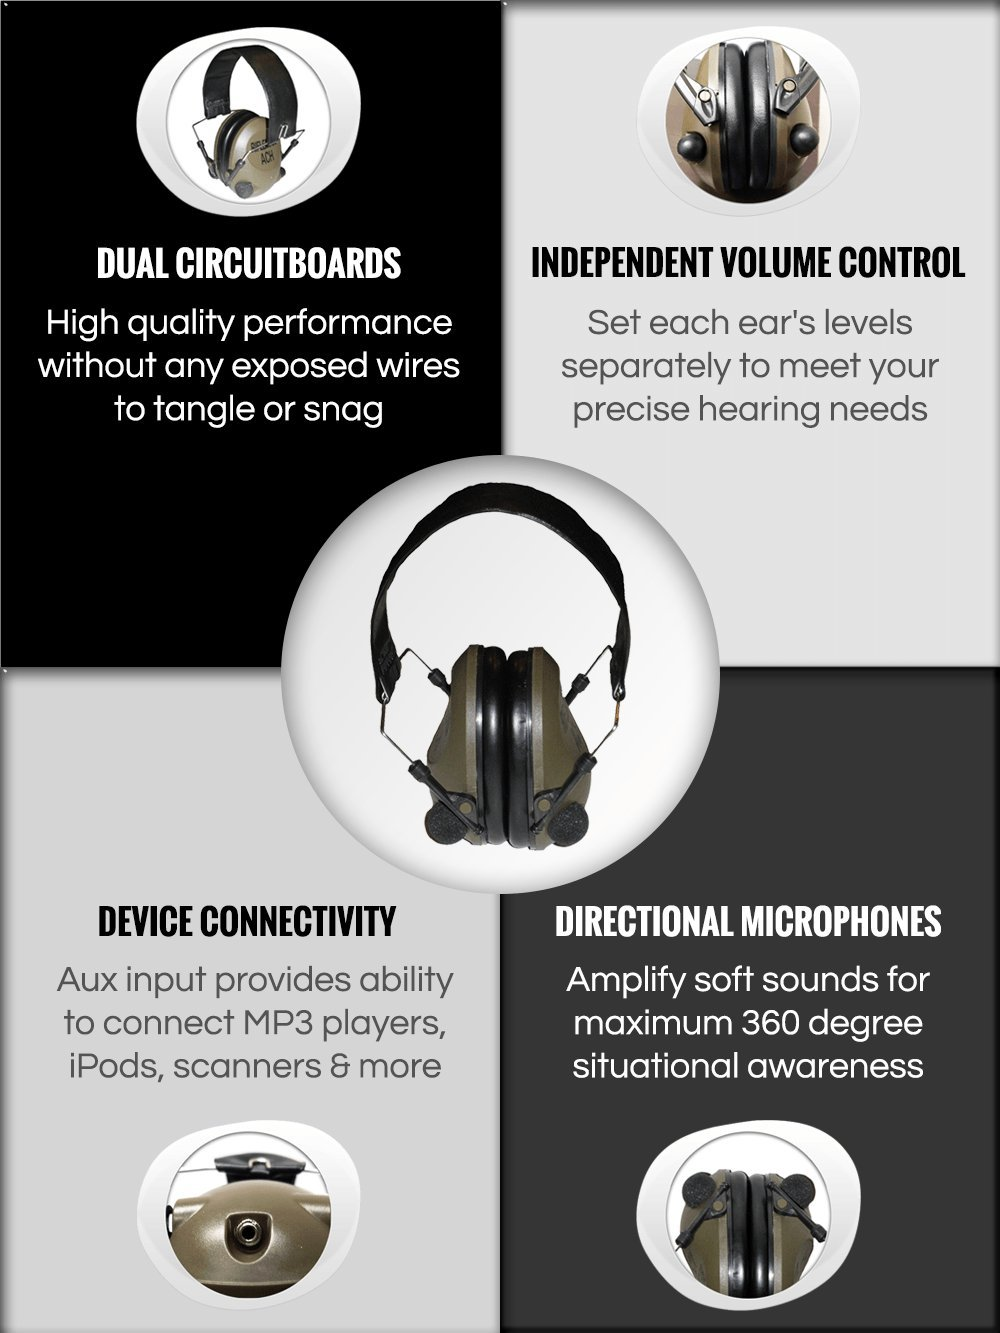 Rifleman Sound Amplification And Suppression Electronic How To Build Amplified Ear Hearing Protection Earmuffs For Shooting Hunting Protectors